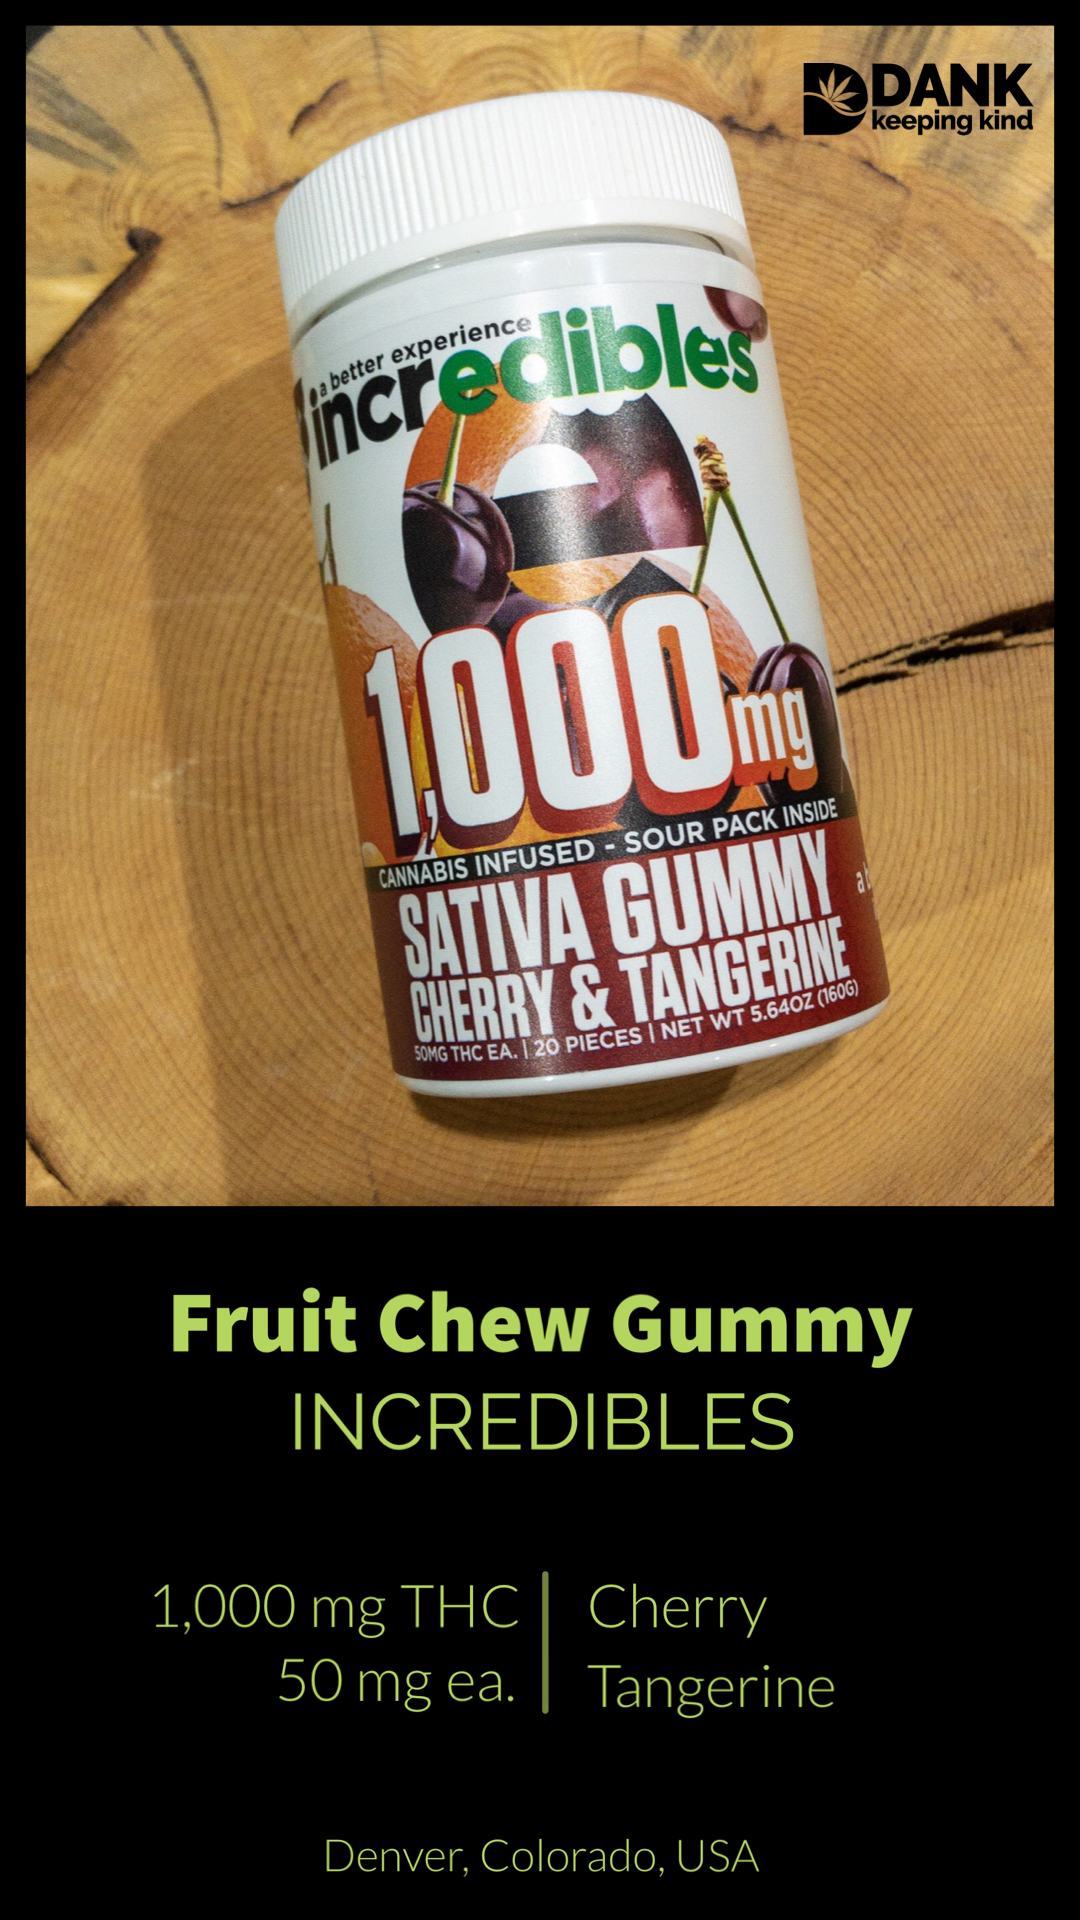 Fruit Chew Gummy by Incredibles available at DANK Dispensary, Denver